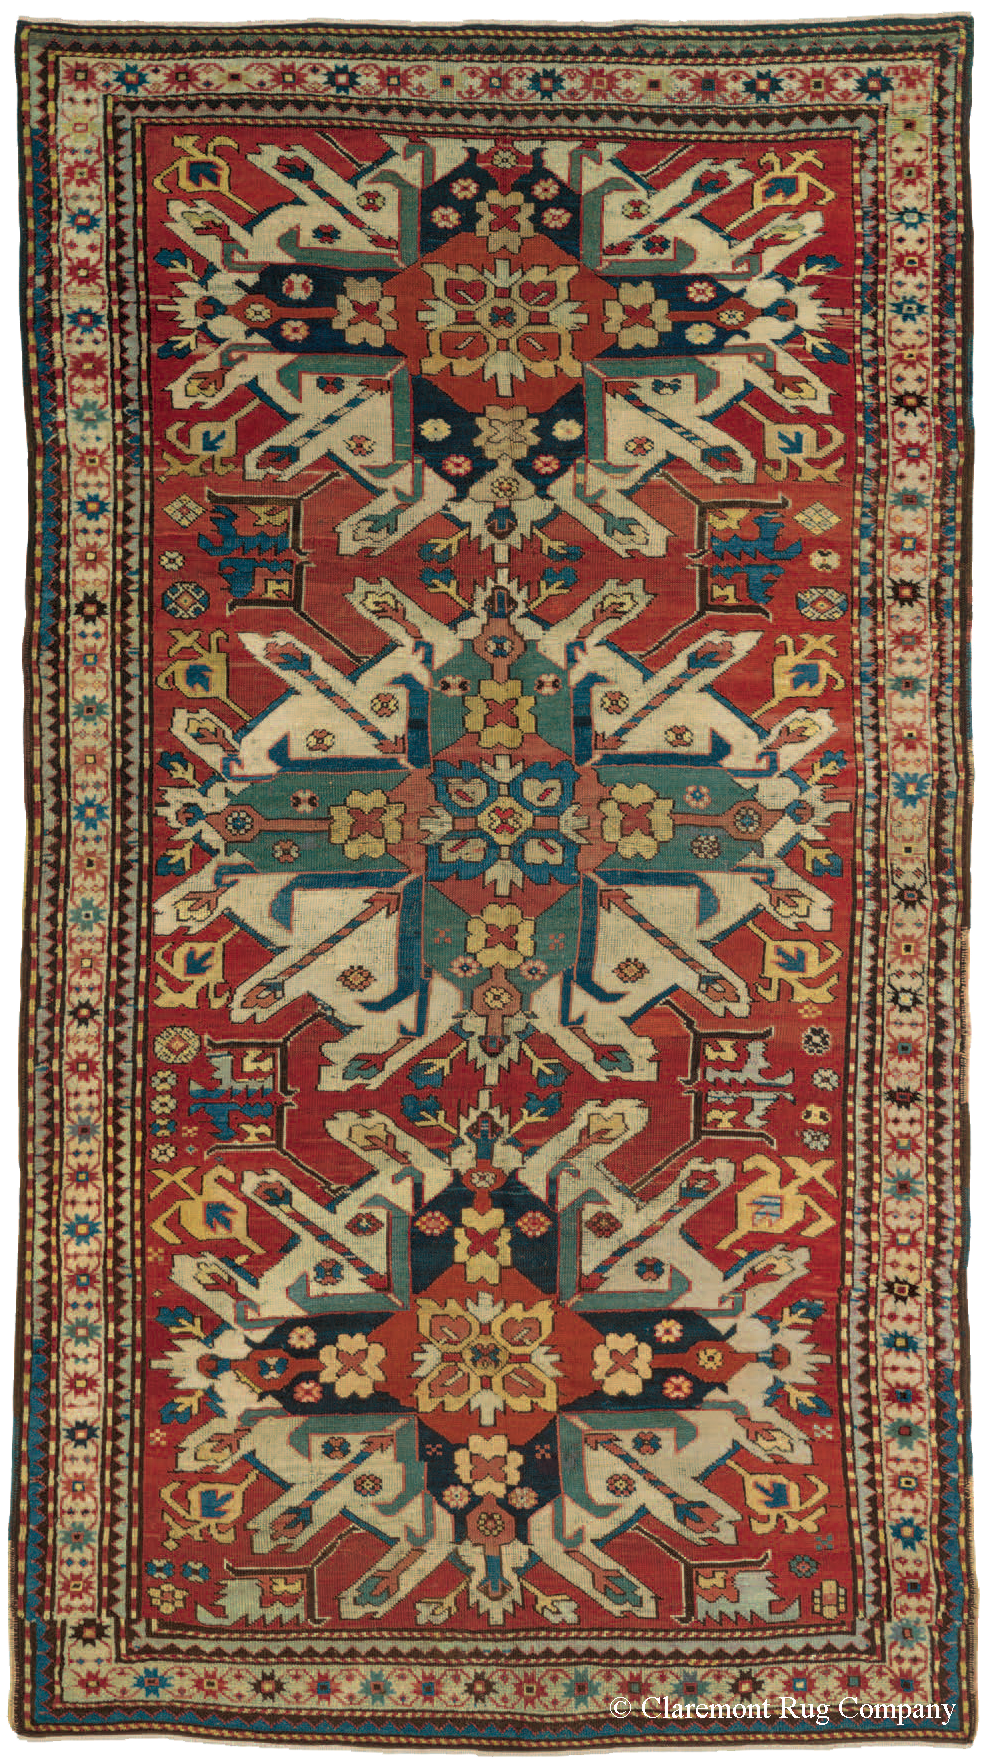 Extremely Rare Eagle Kazak Tribal Rug From Southern Caucasus Mountains